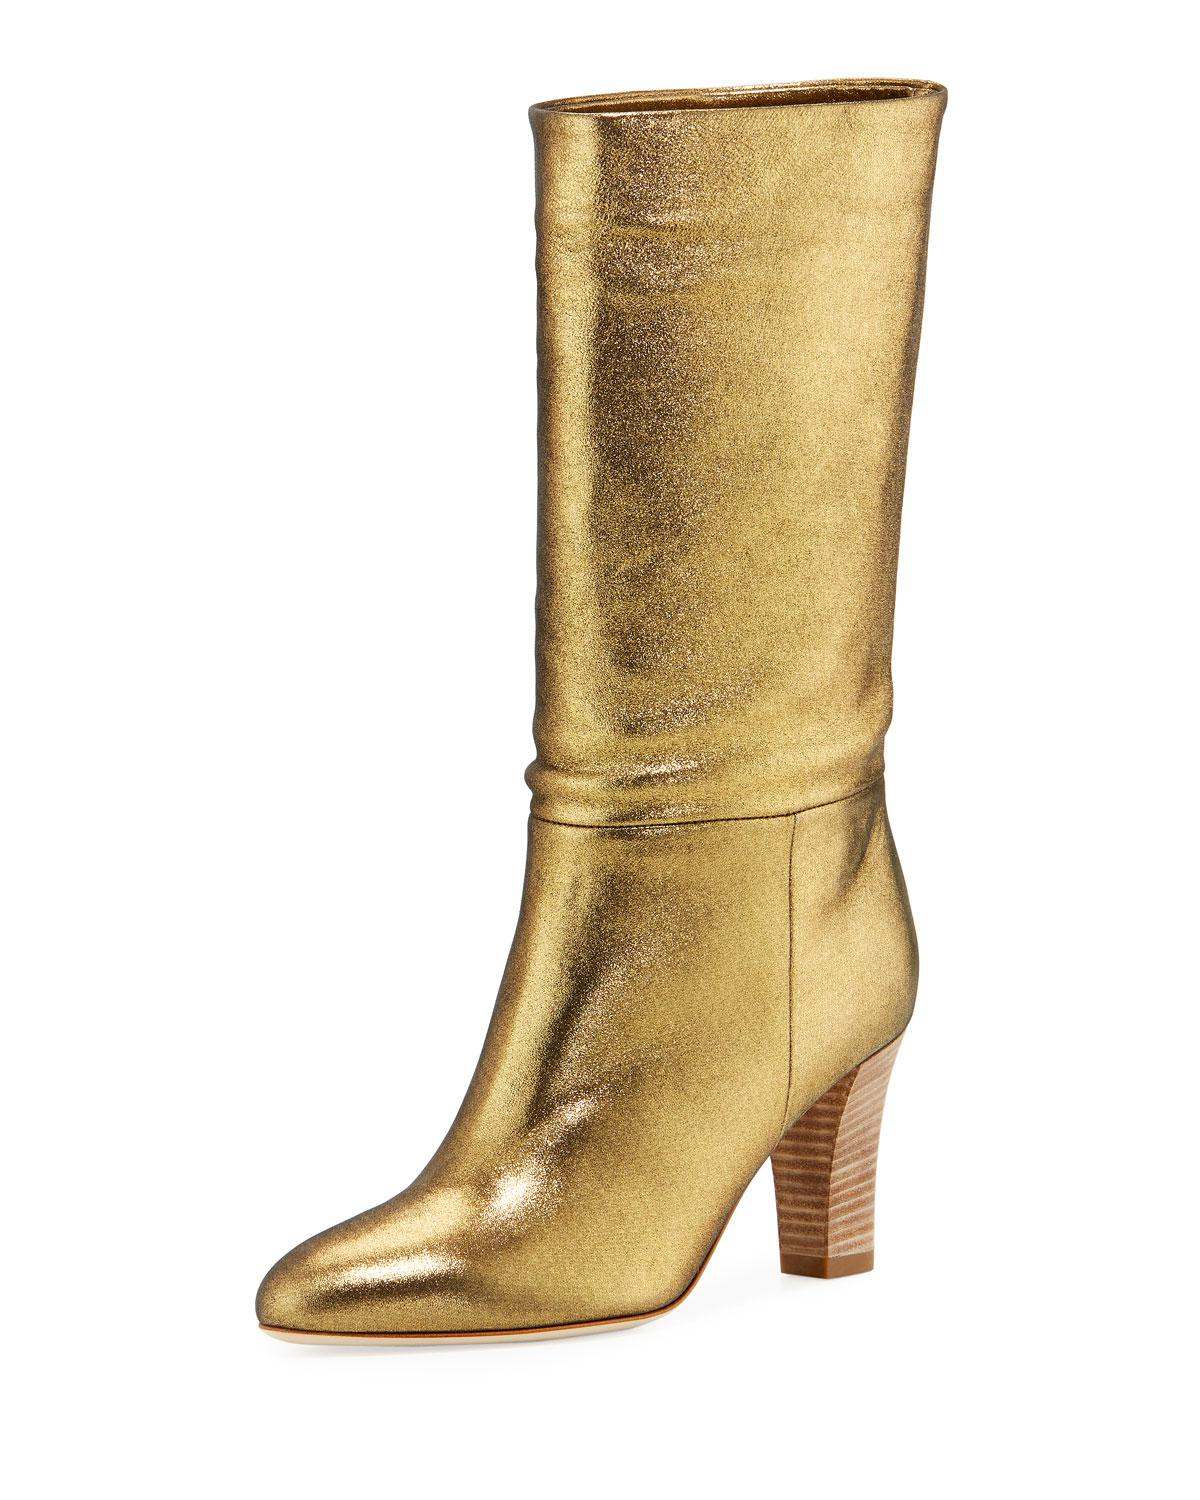 0912dd0b9b56 Long-Touch to Zoom. SJP by Sarah Jessica Parker - Reign Metallic Leather  Block-heel ...